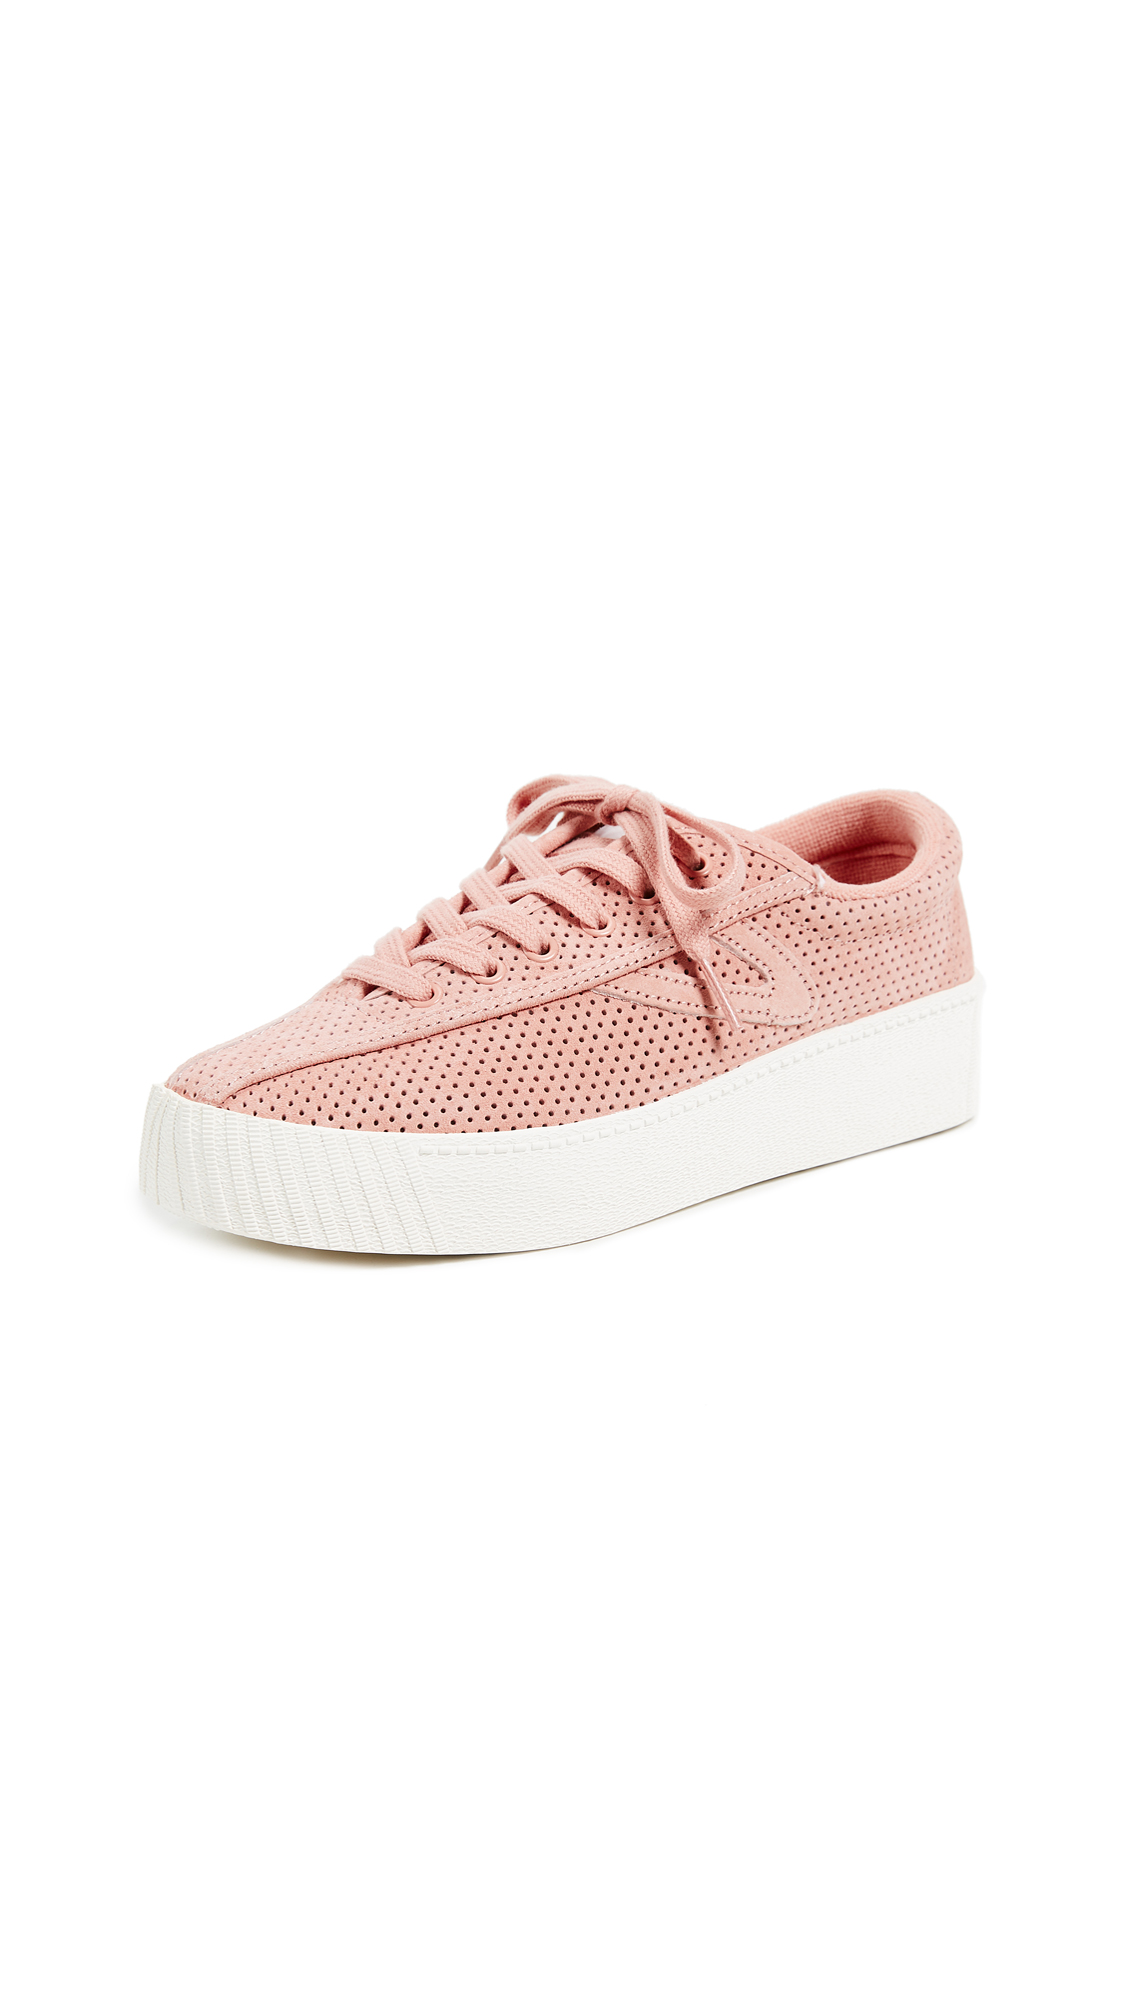 Tretorn Nylite Bold III Perforated Platform Sneakers - Soft Blush